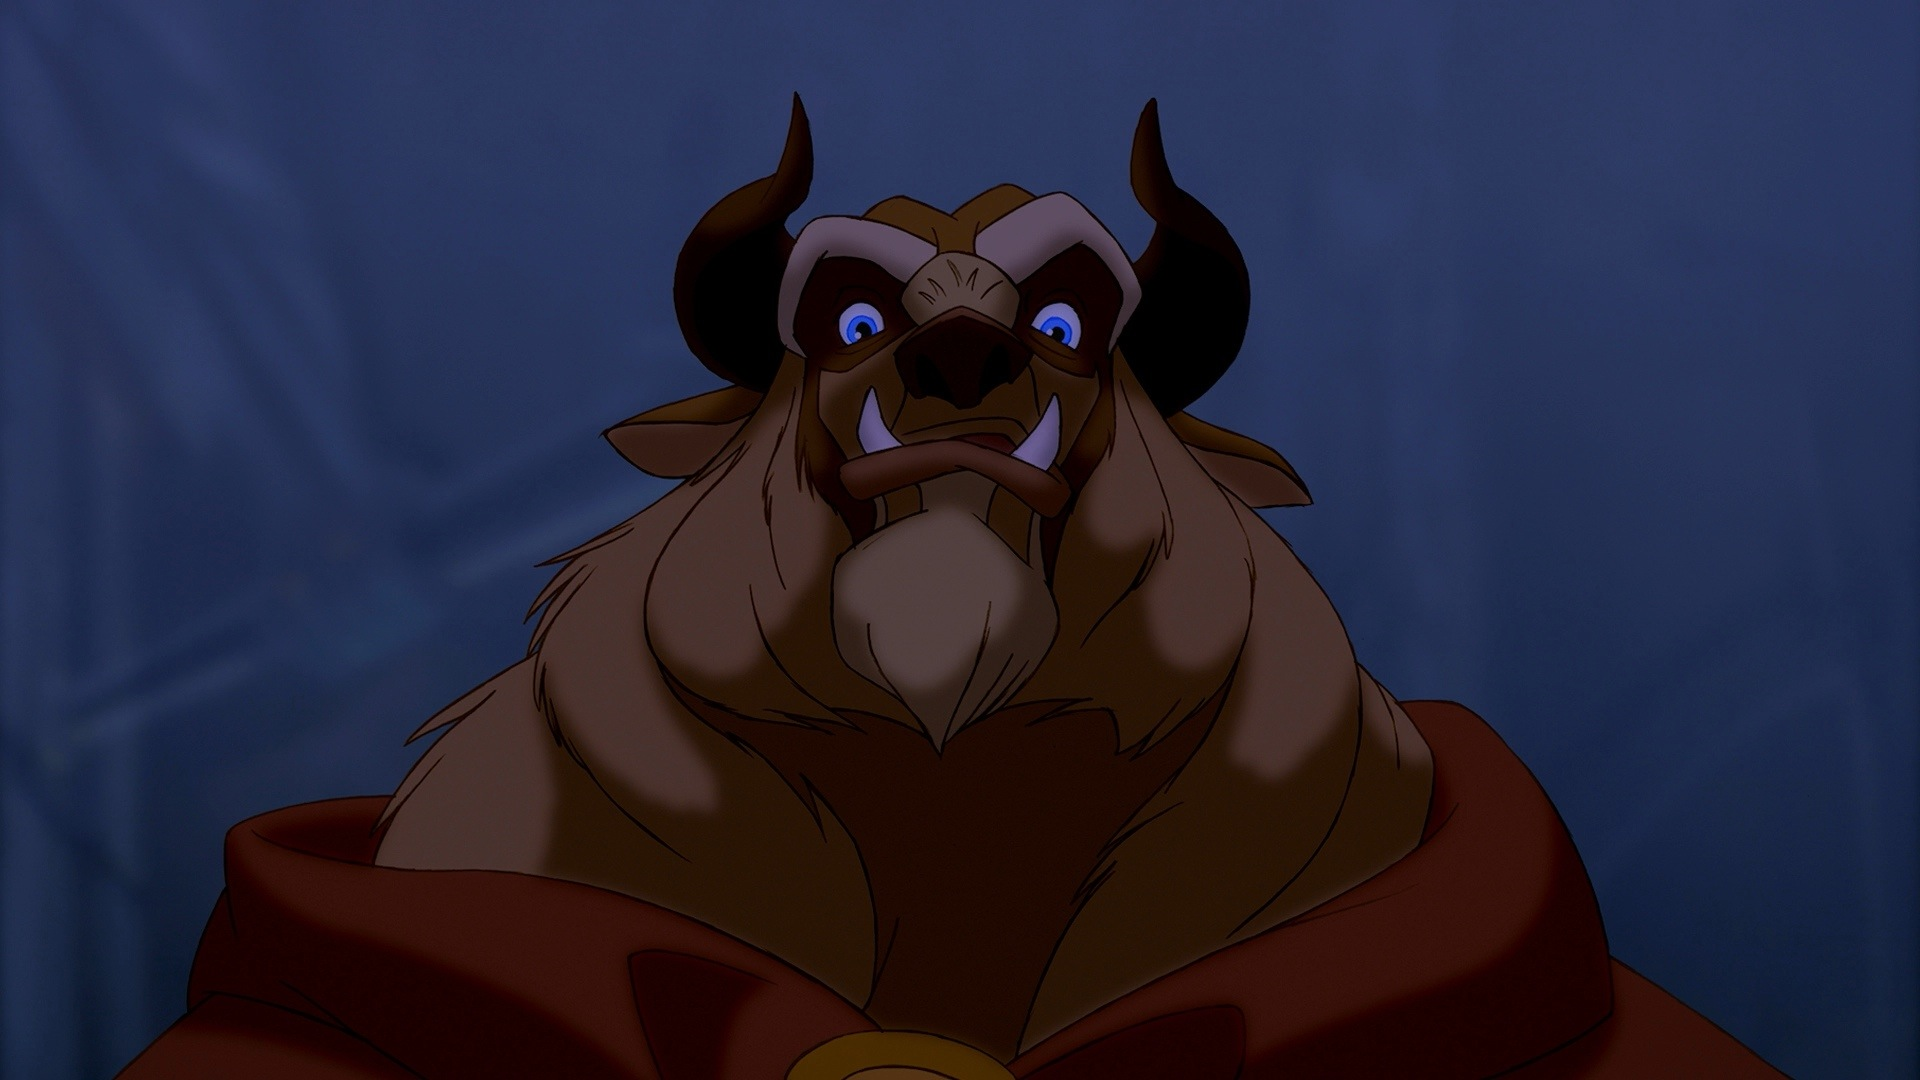 beauty-and-the-beast-disney-beast.jpg